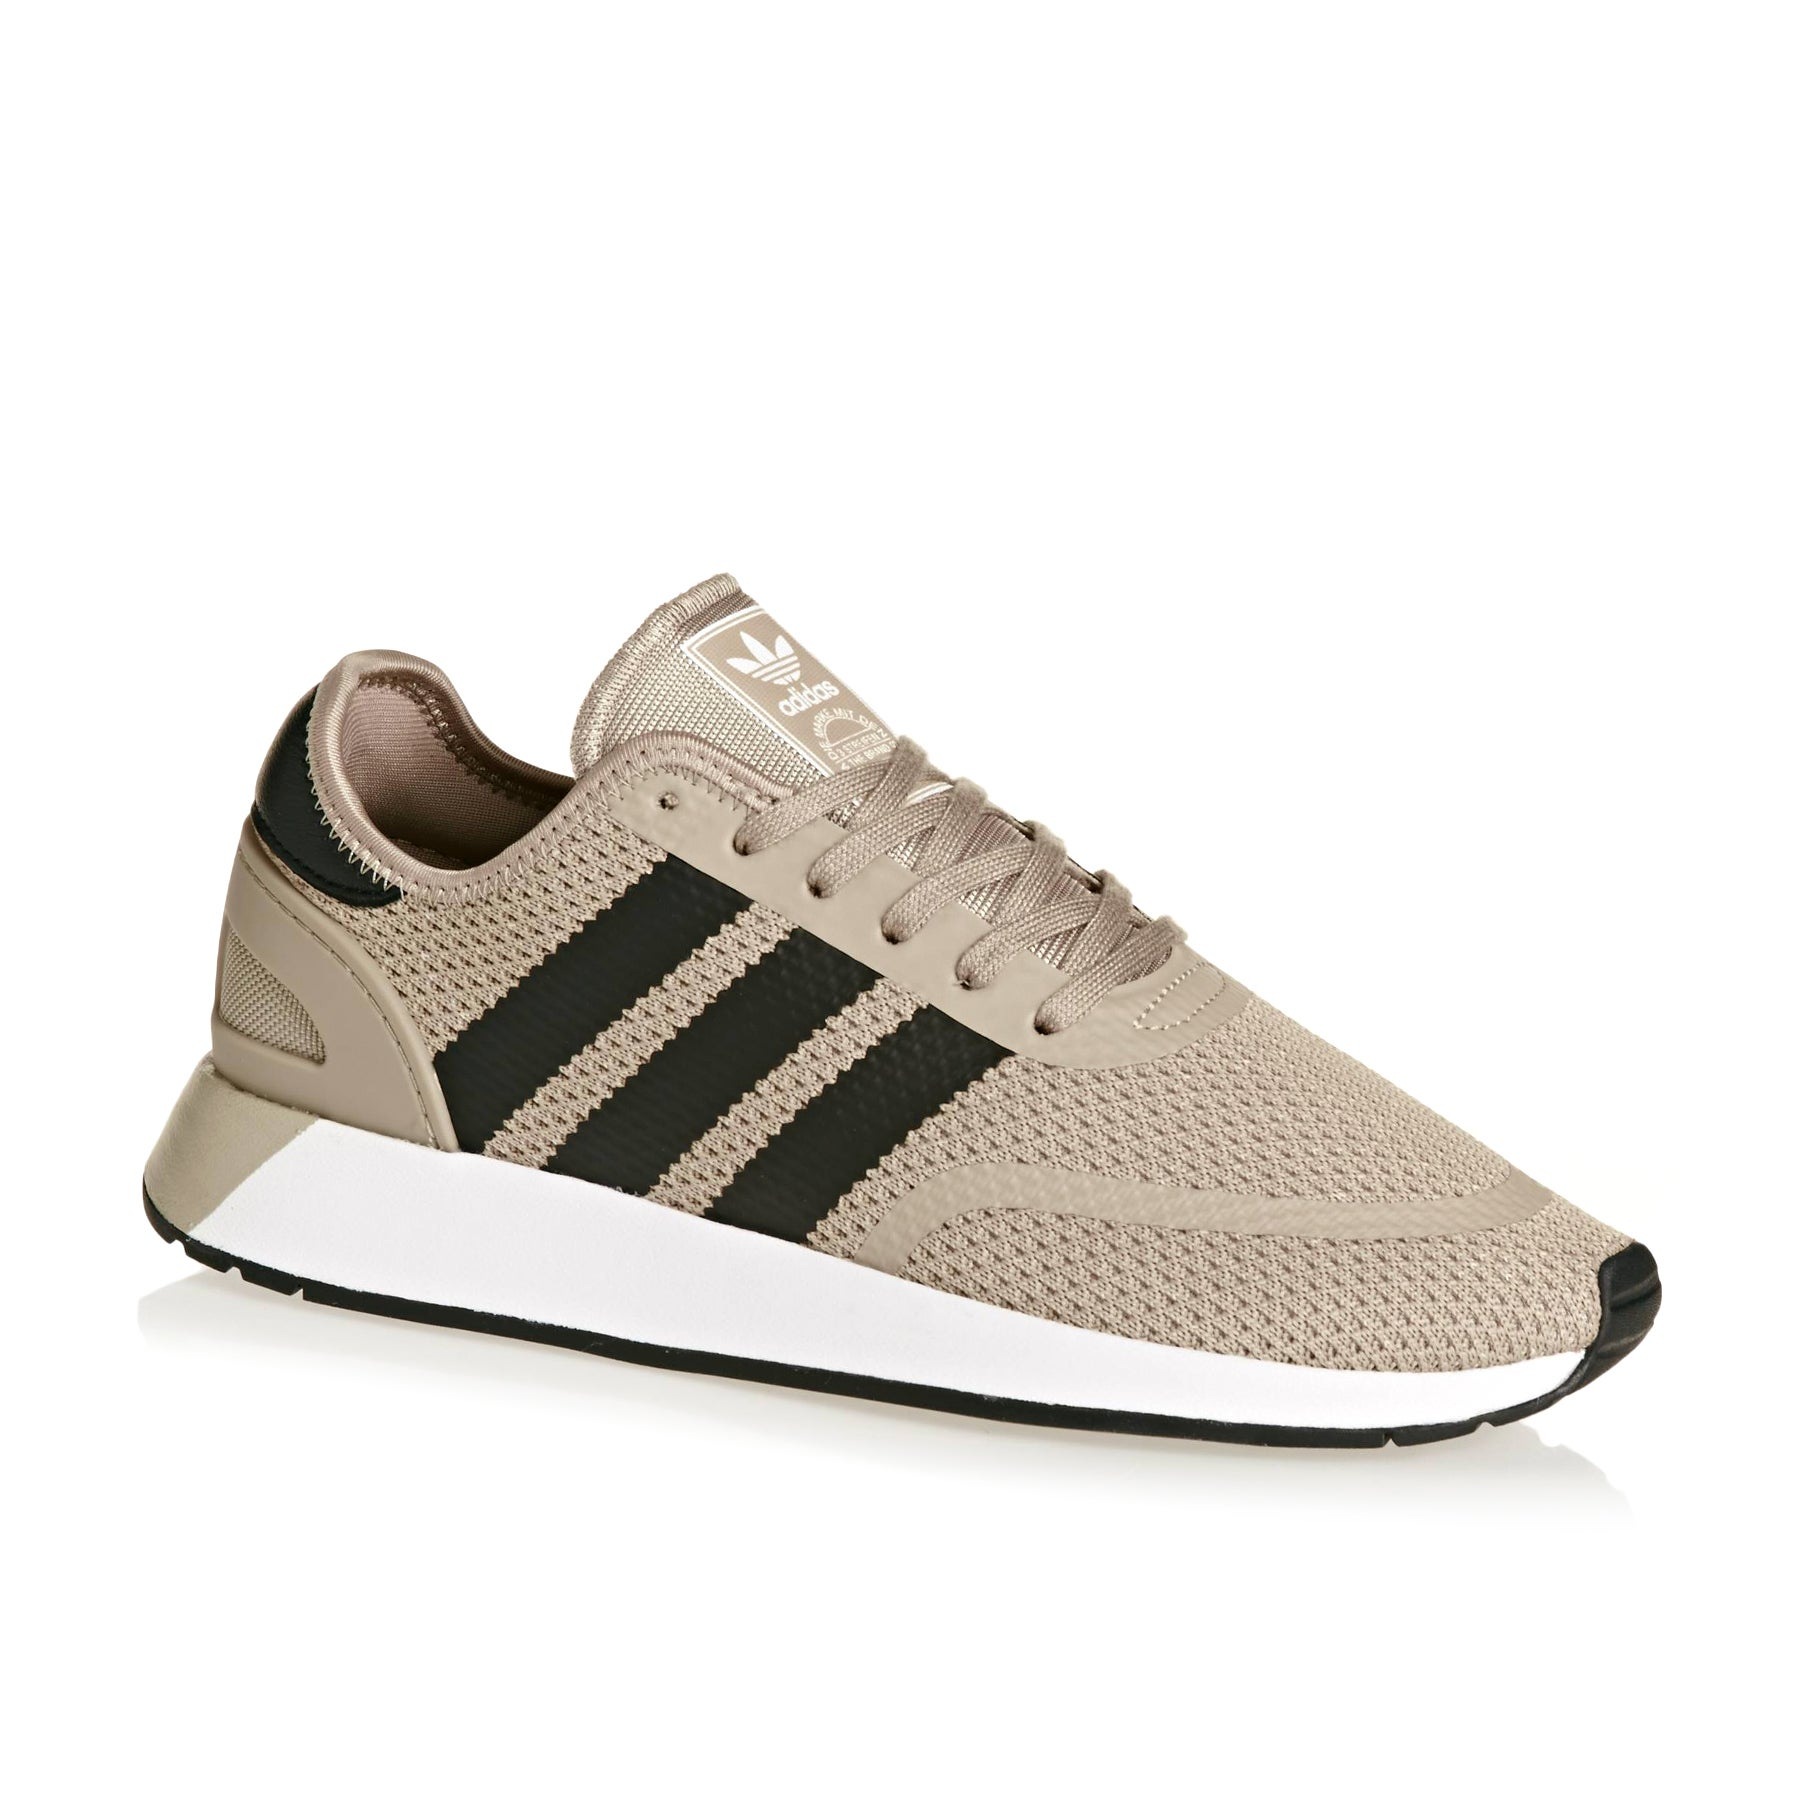 Adidas Originals N-5923 Shoes - Tan Black White